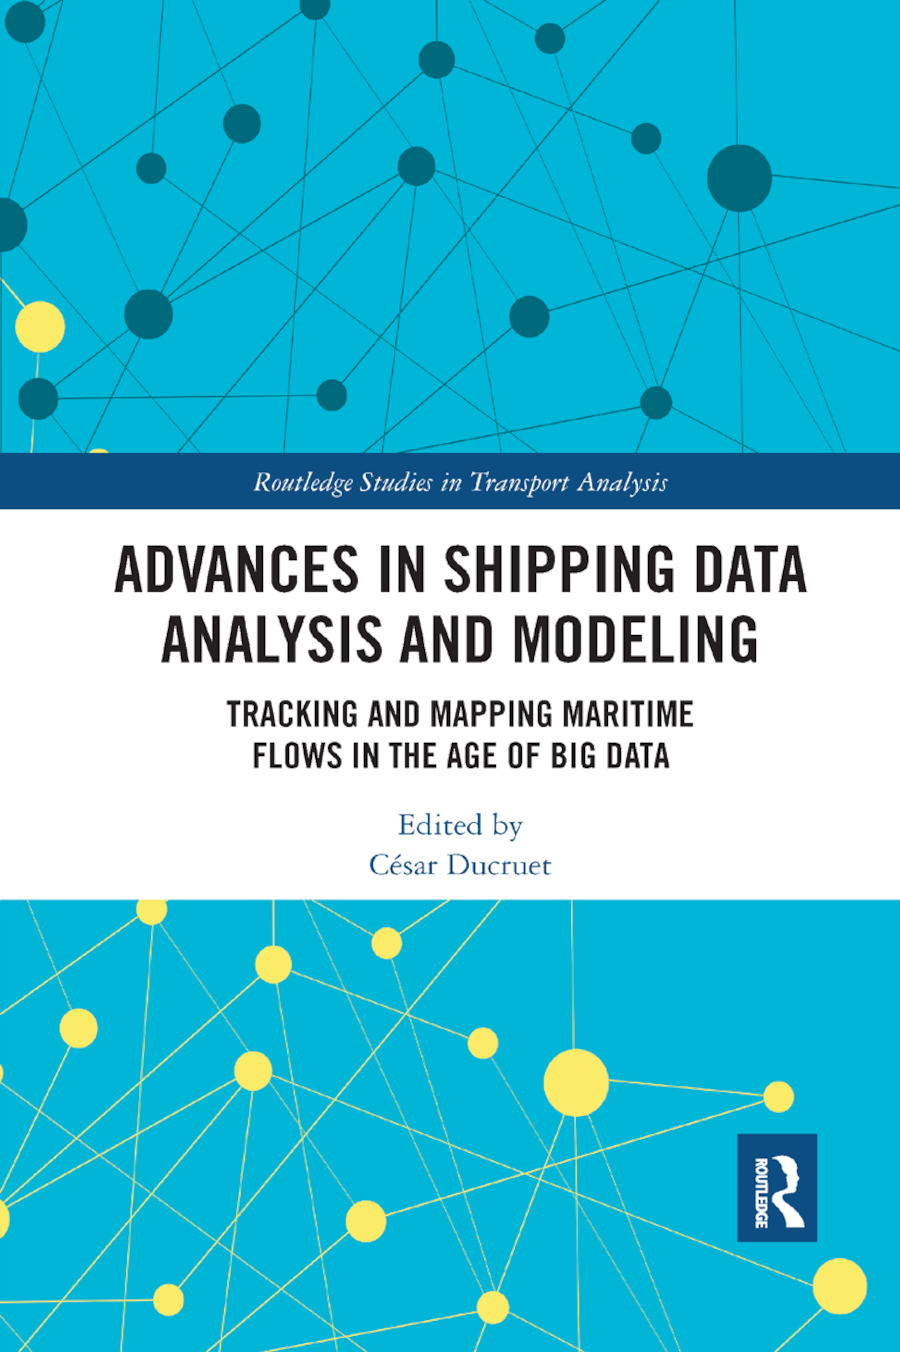 Advances in Shipping Data Analysis and Modeling: Tracking and Mapping Maritime Flows in the Age of Big Data book cover